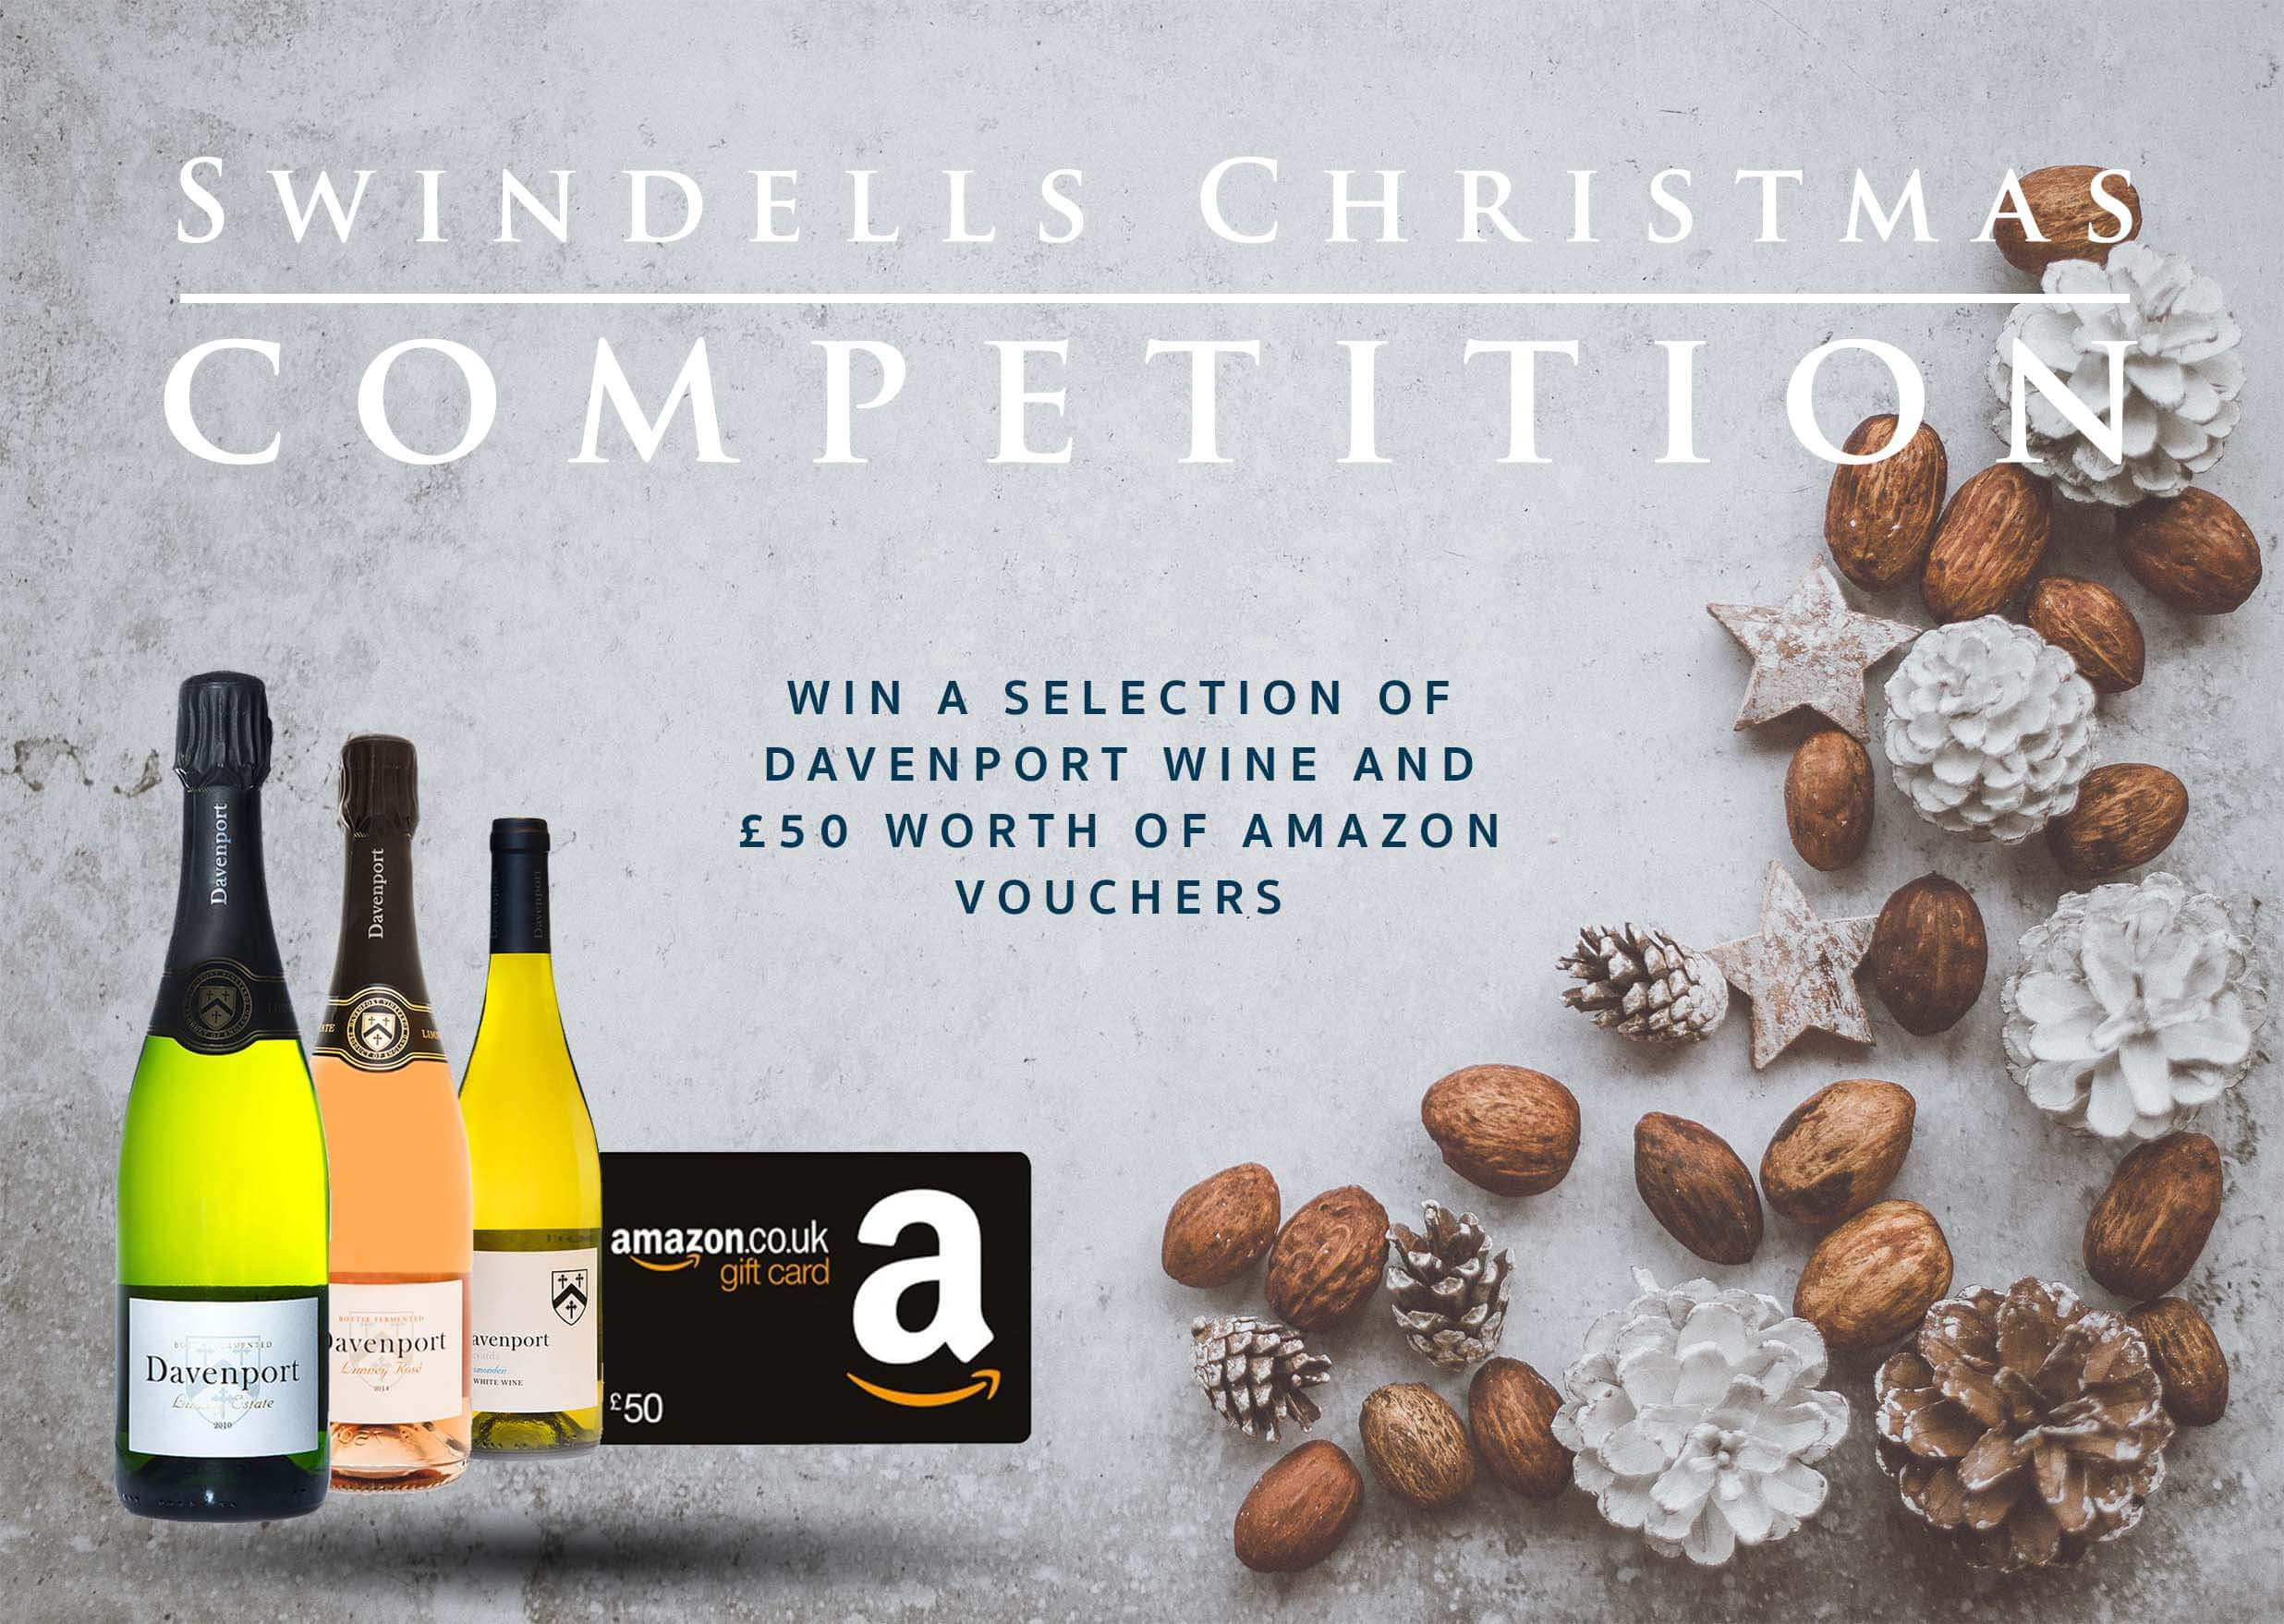 Swindells Christmas competition wine bottles and amazon voucher